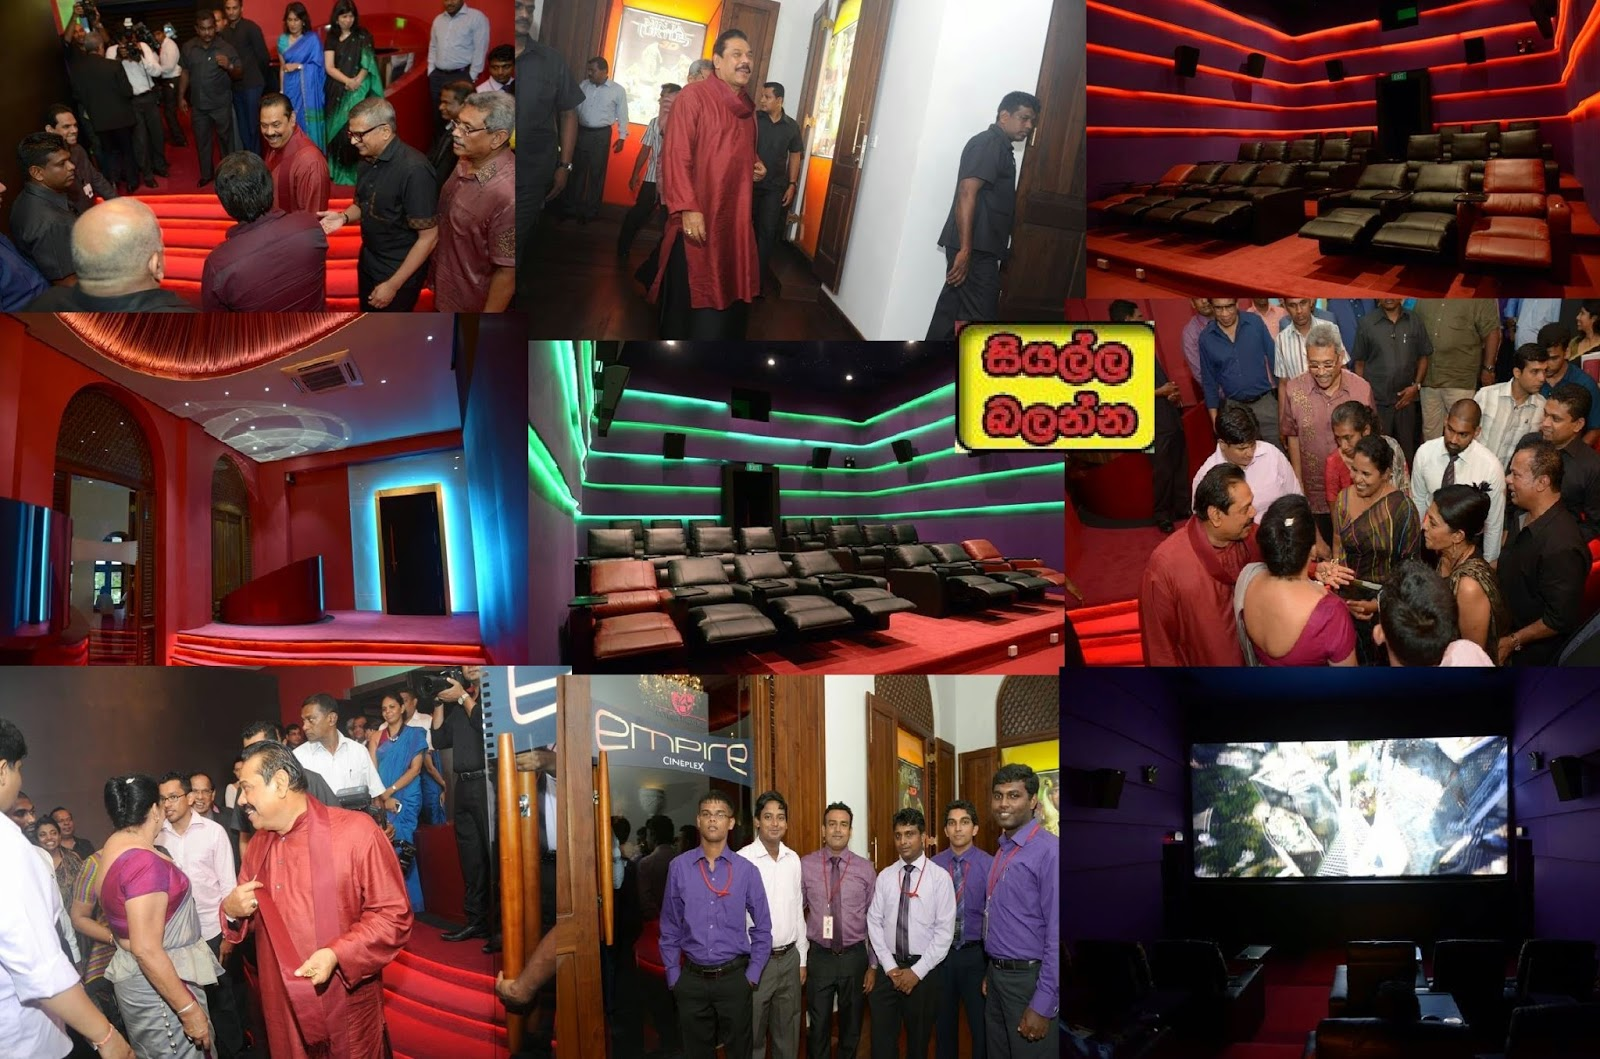 http://picture.gossiplankahotnews.com/2014/07/sri-lankas-first-boutique-cinema.html